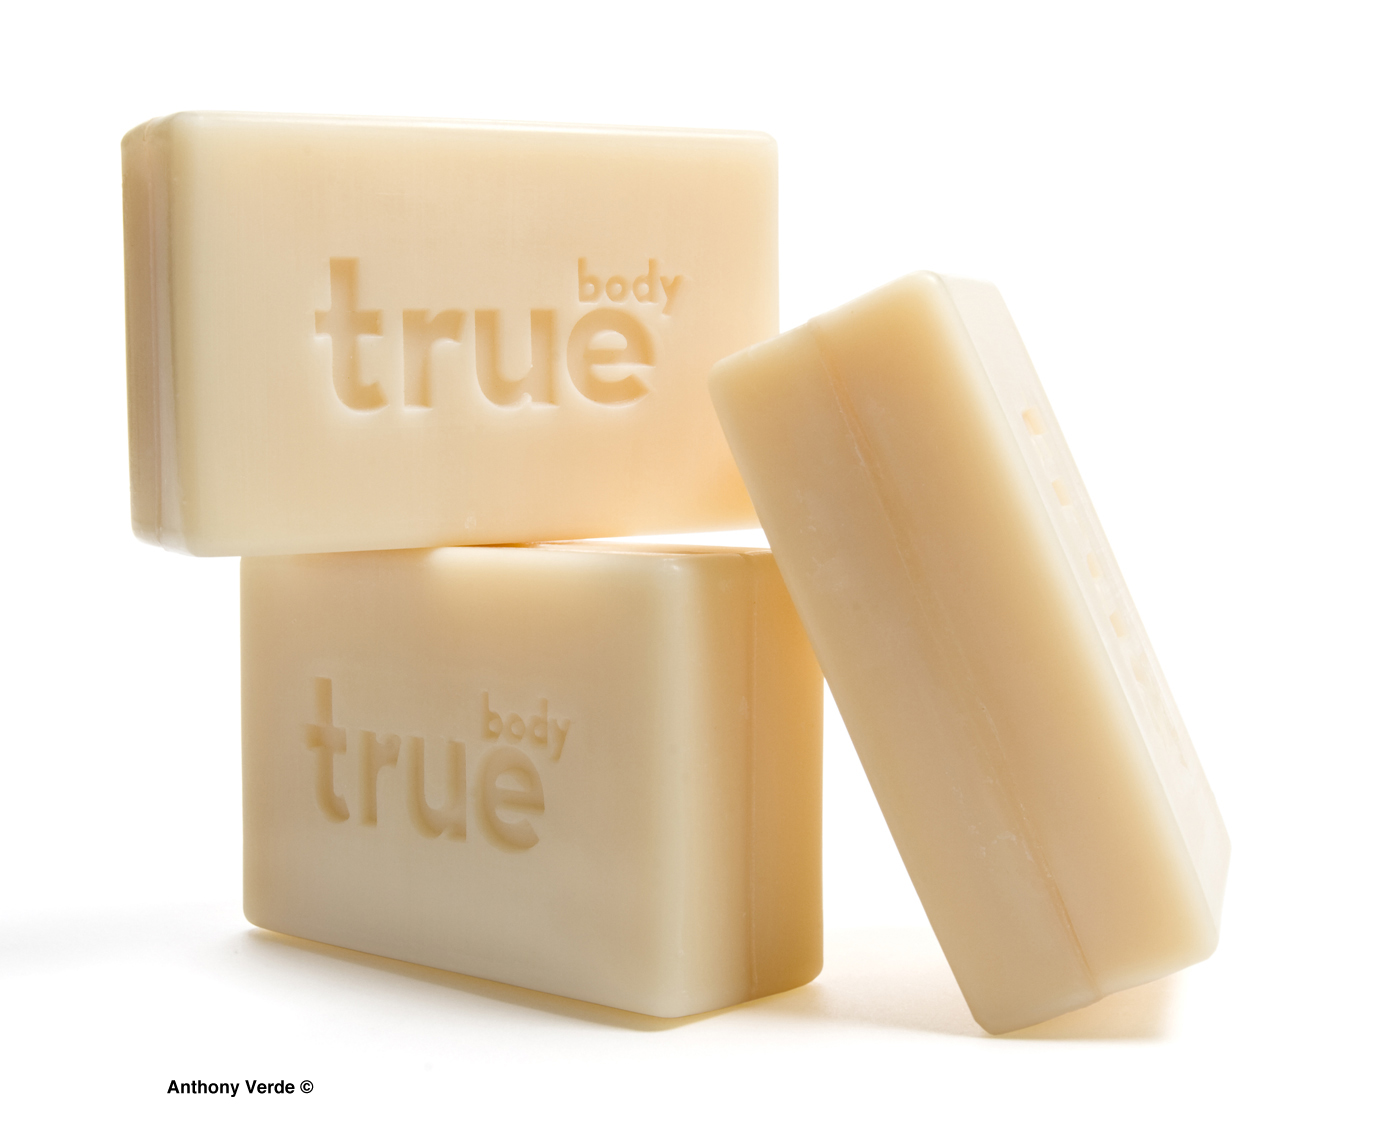 soaps-true-still-life-photography